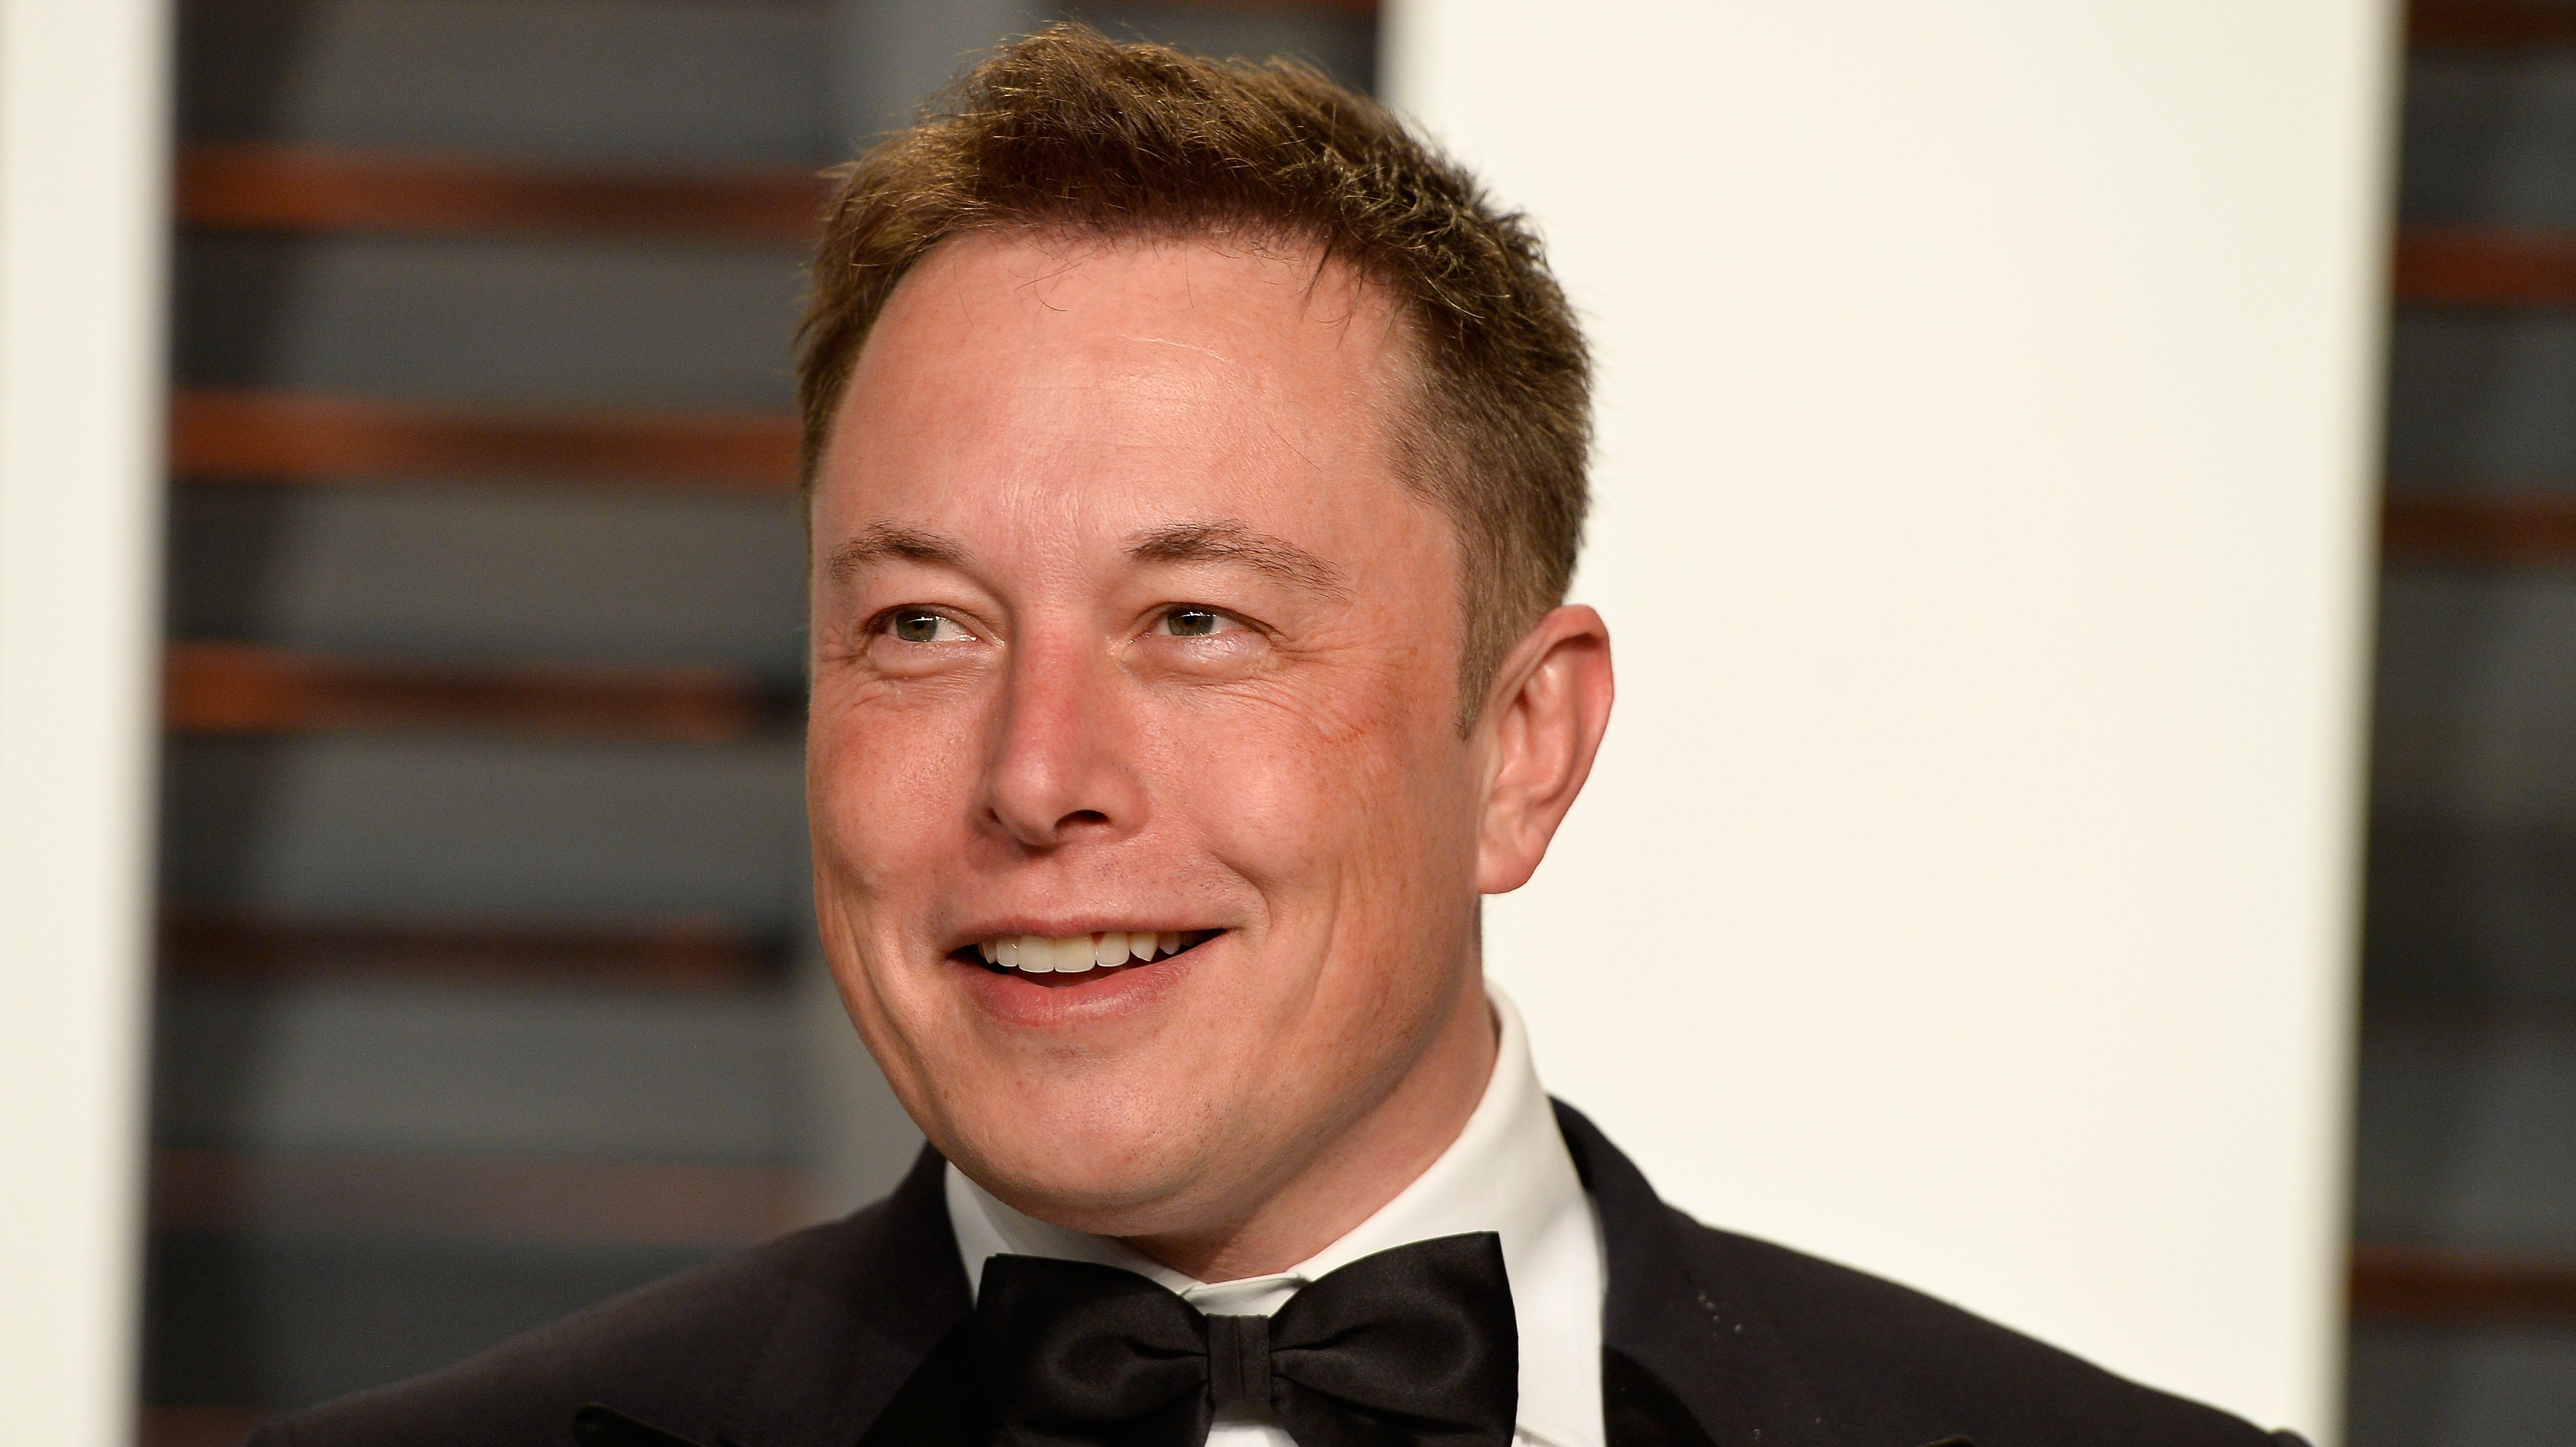 Elon Musk Donates To GOP Political Action Committee Because It Helps Elon Musk